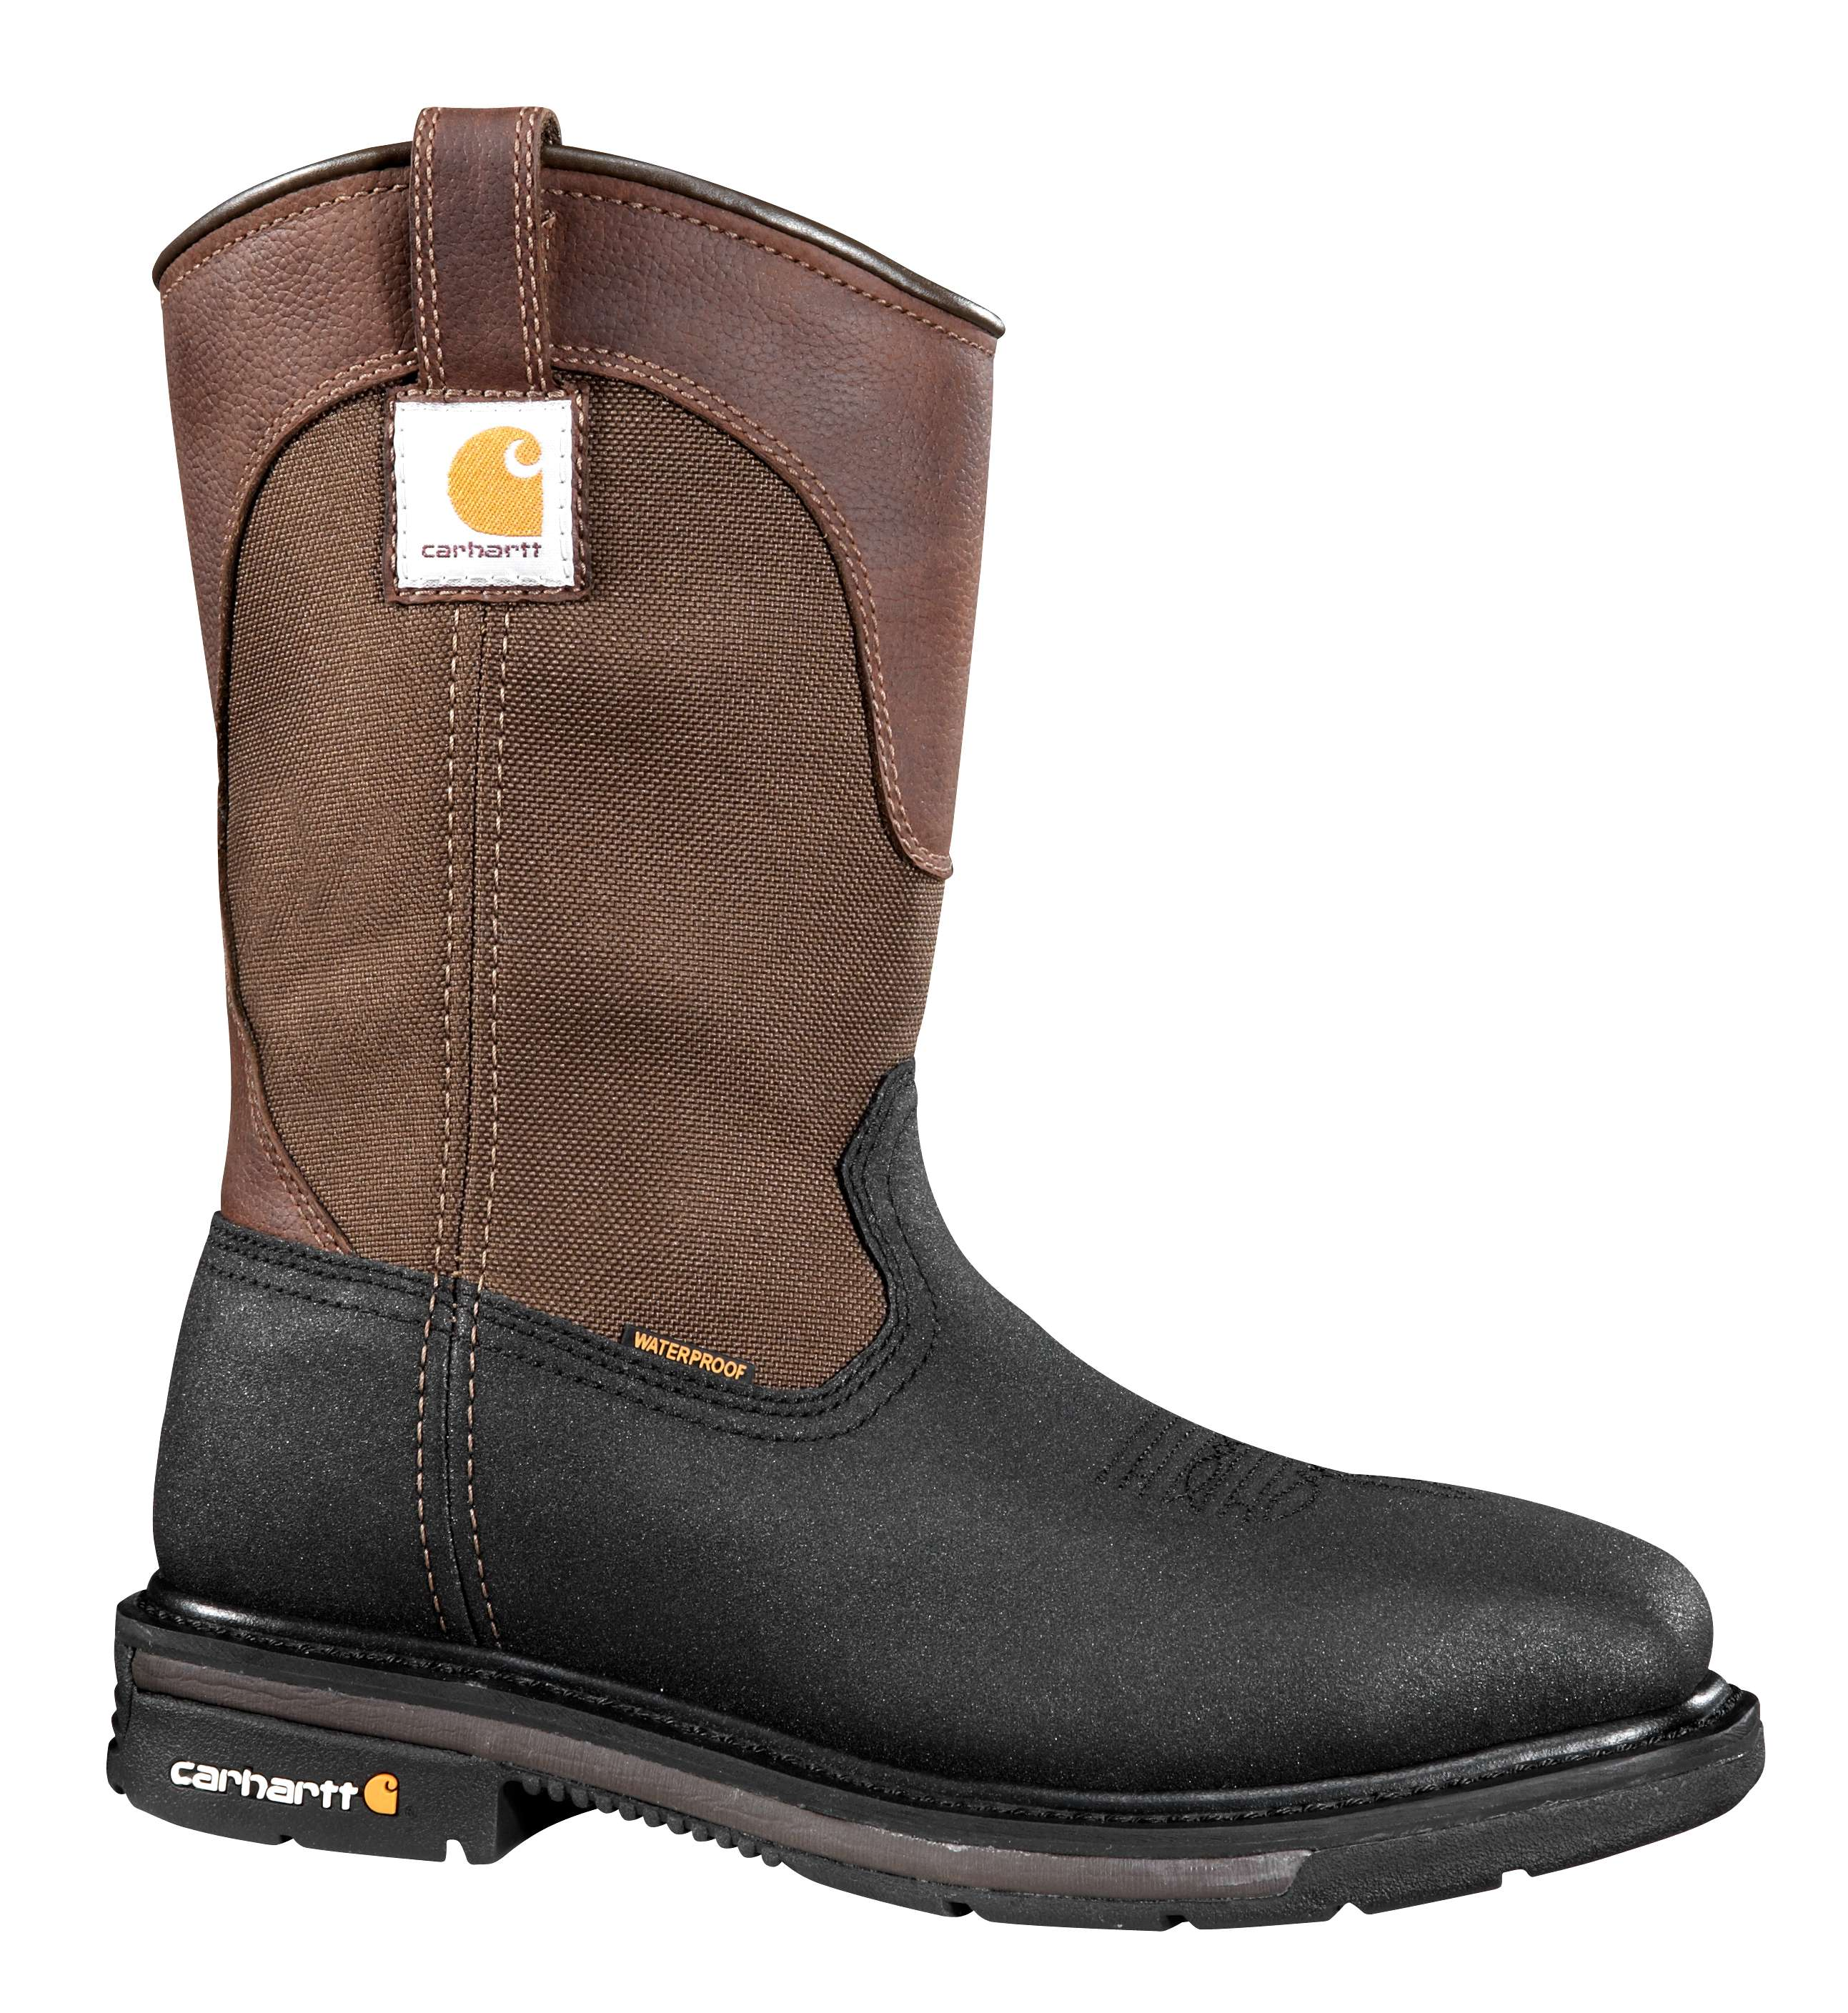 Carhartt 11 Inch Brownblack Safety Toe Square Toe Wellington